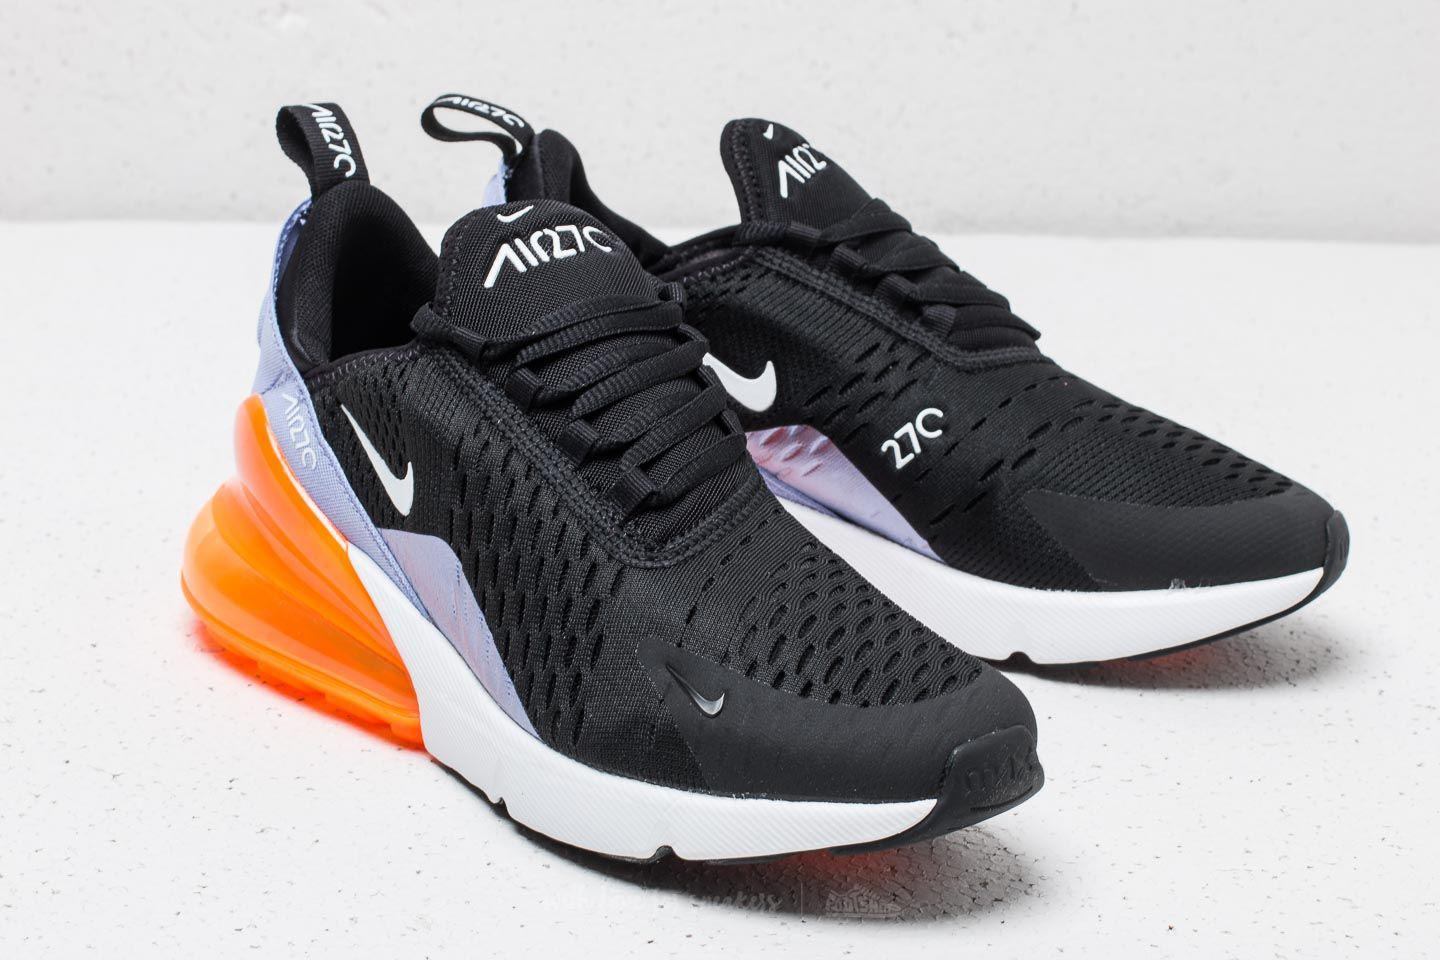 Lyst - Nike Air Max 270 Gs Black  White-twilight Pulse for Men 02f12658a